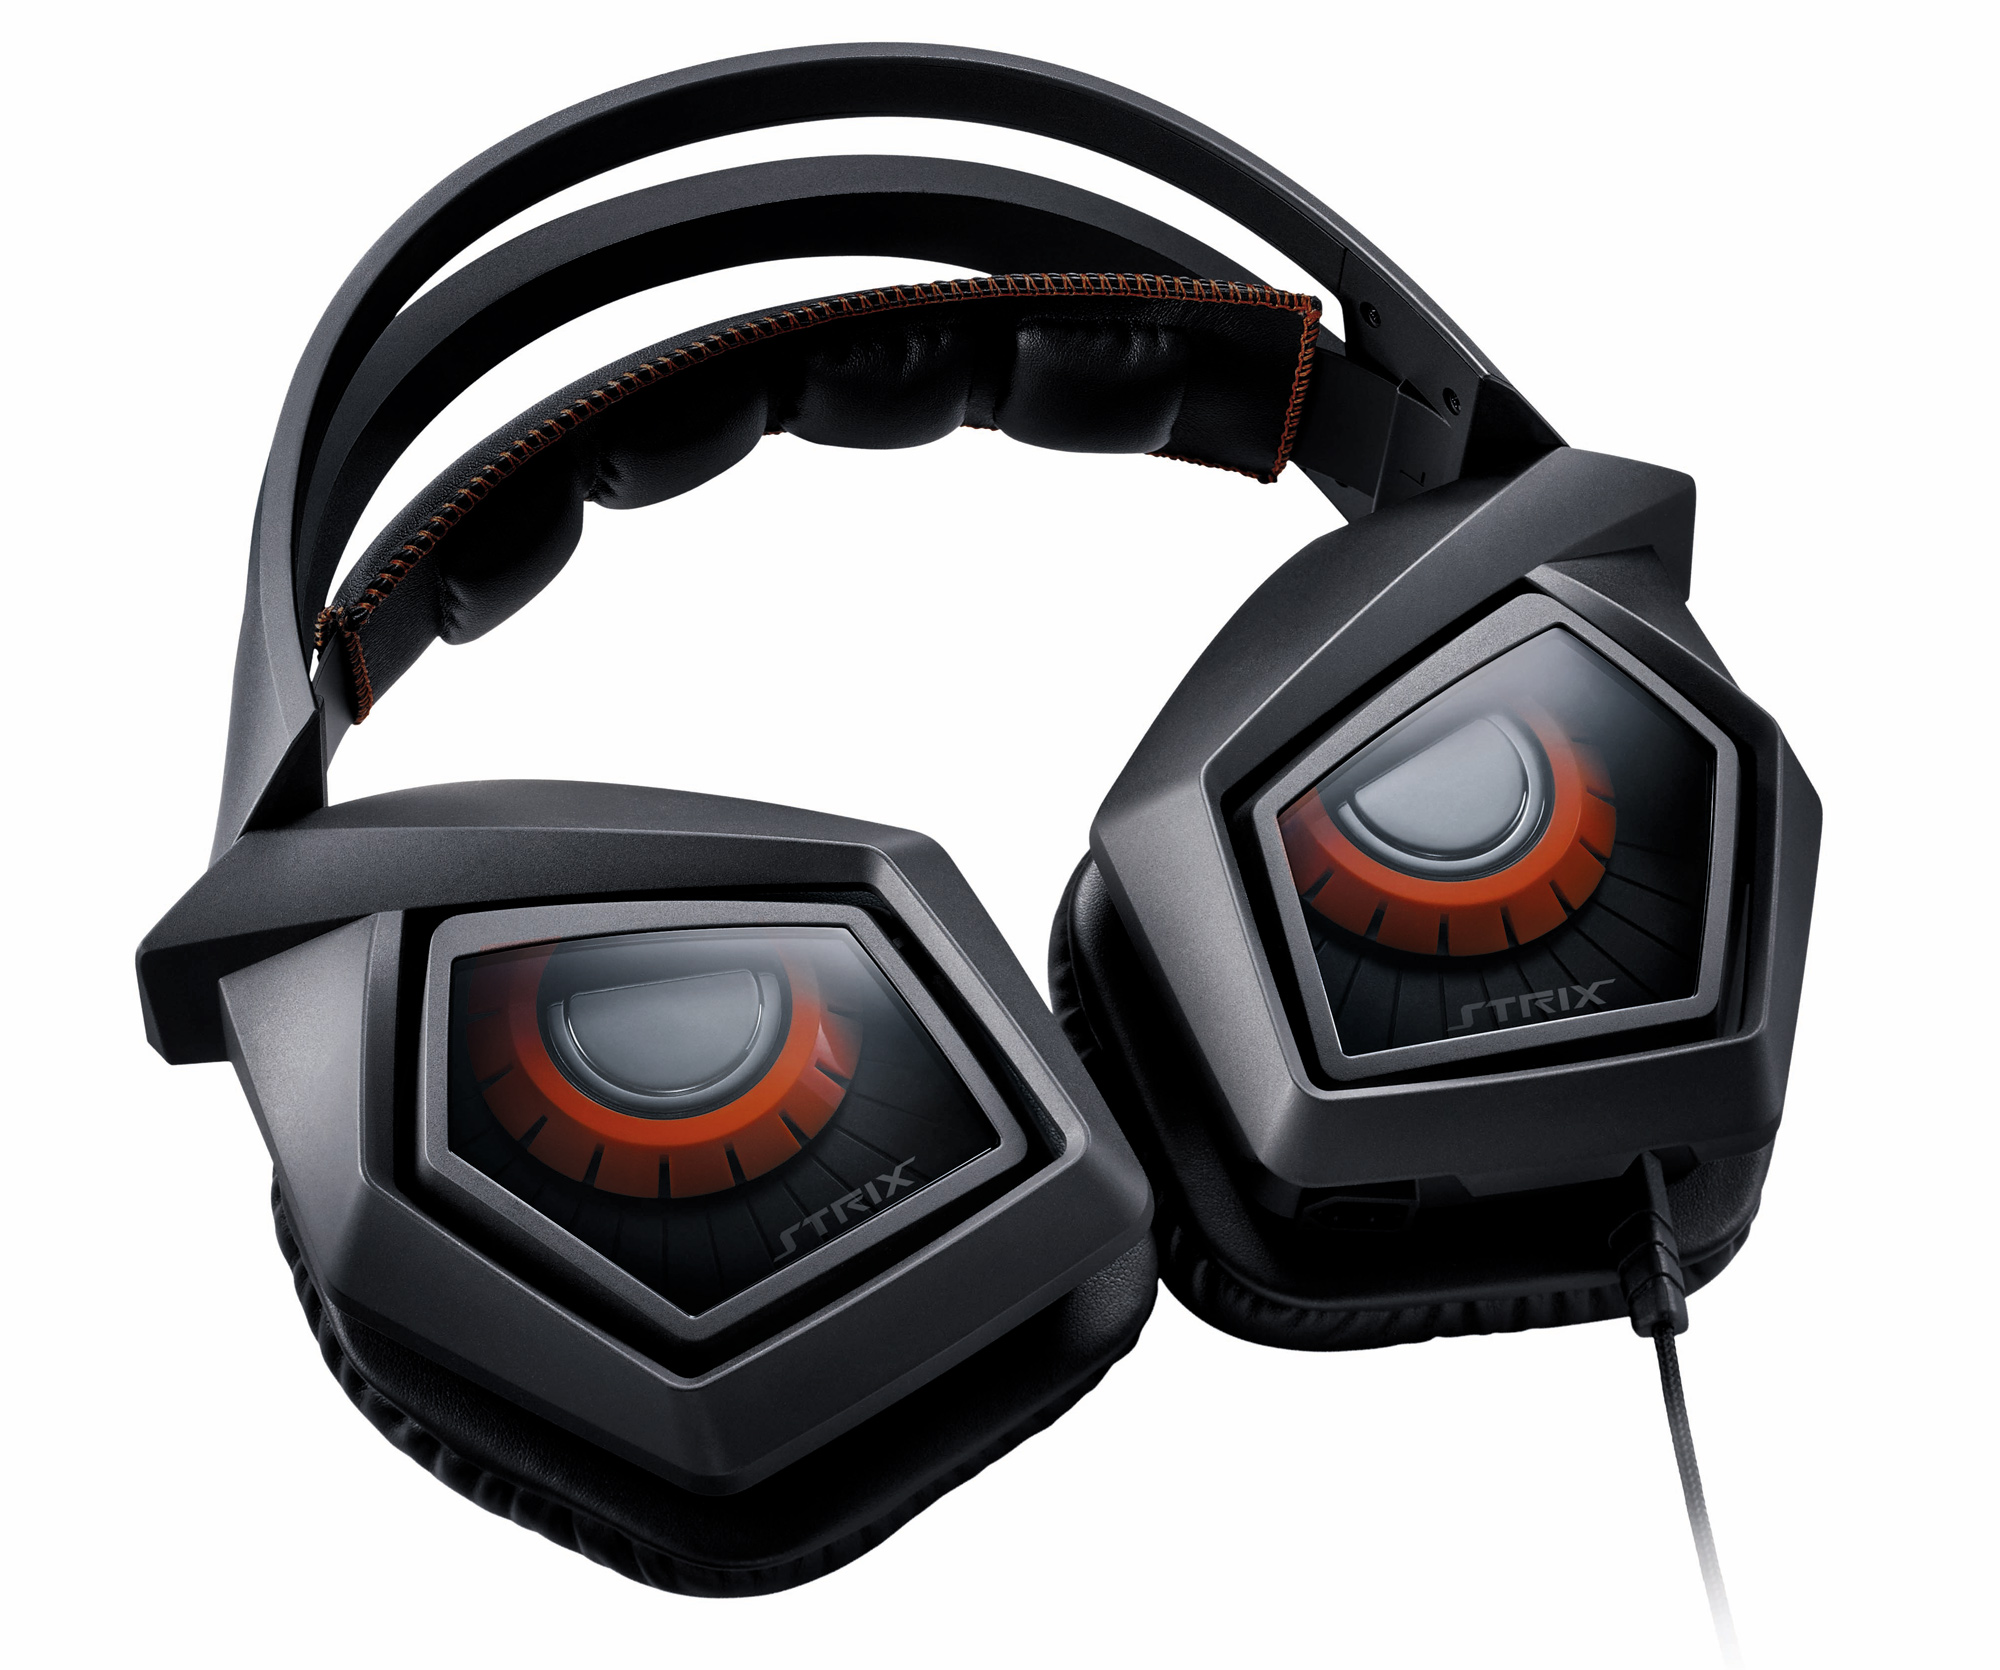 ASUS Announces Strix Pro Gaming Headset Play3r